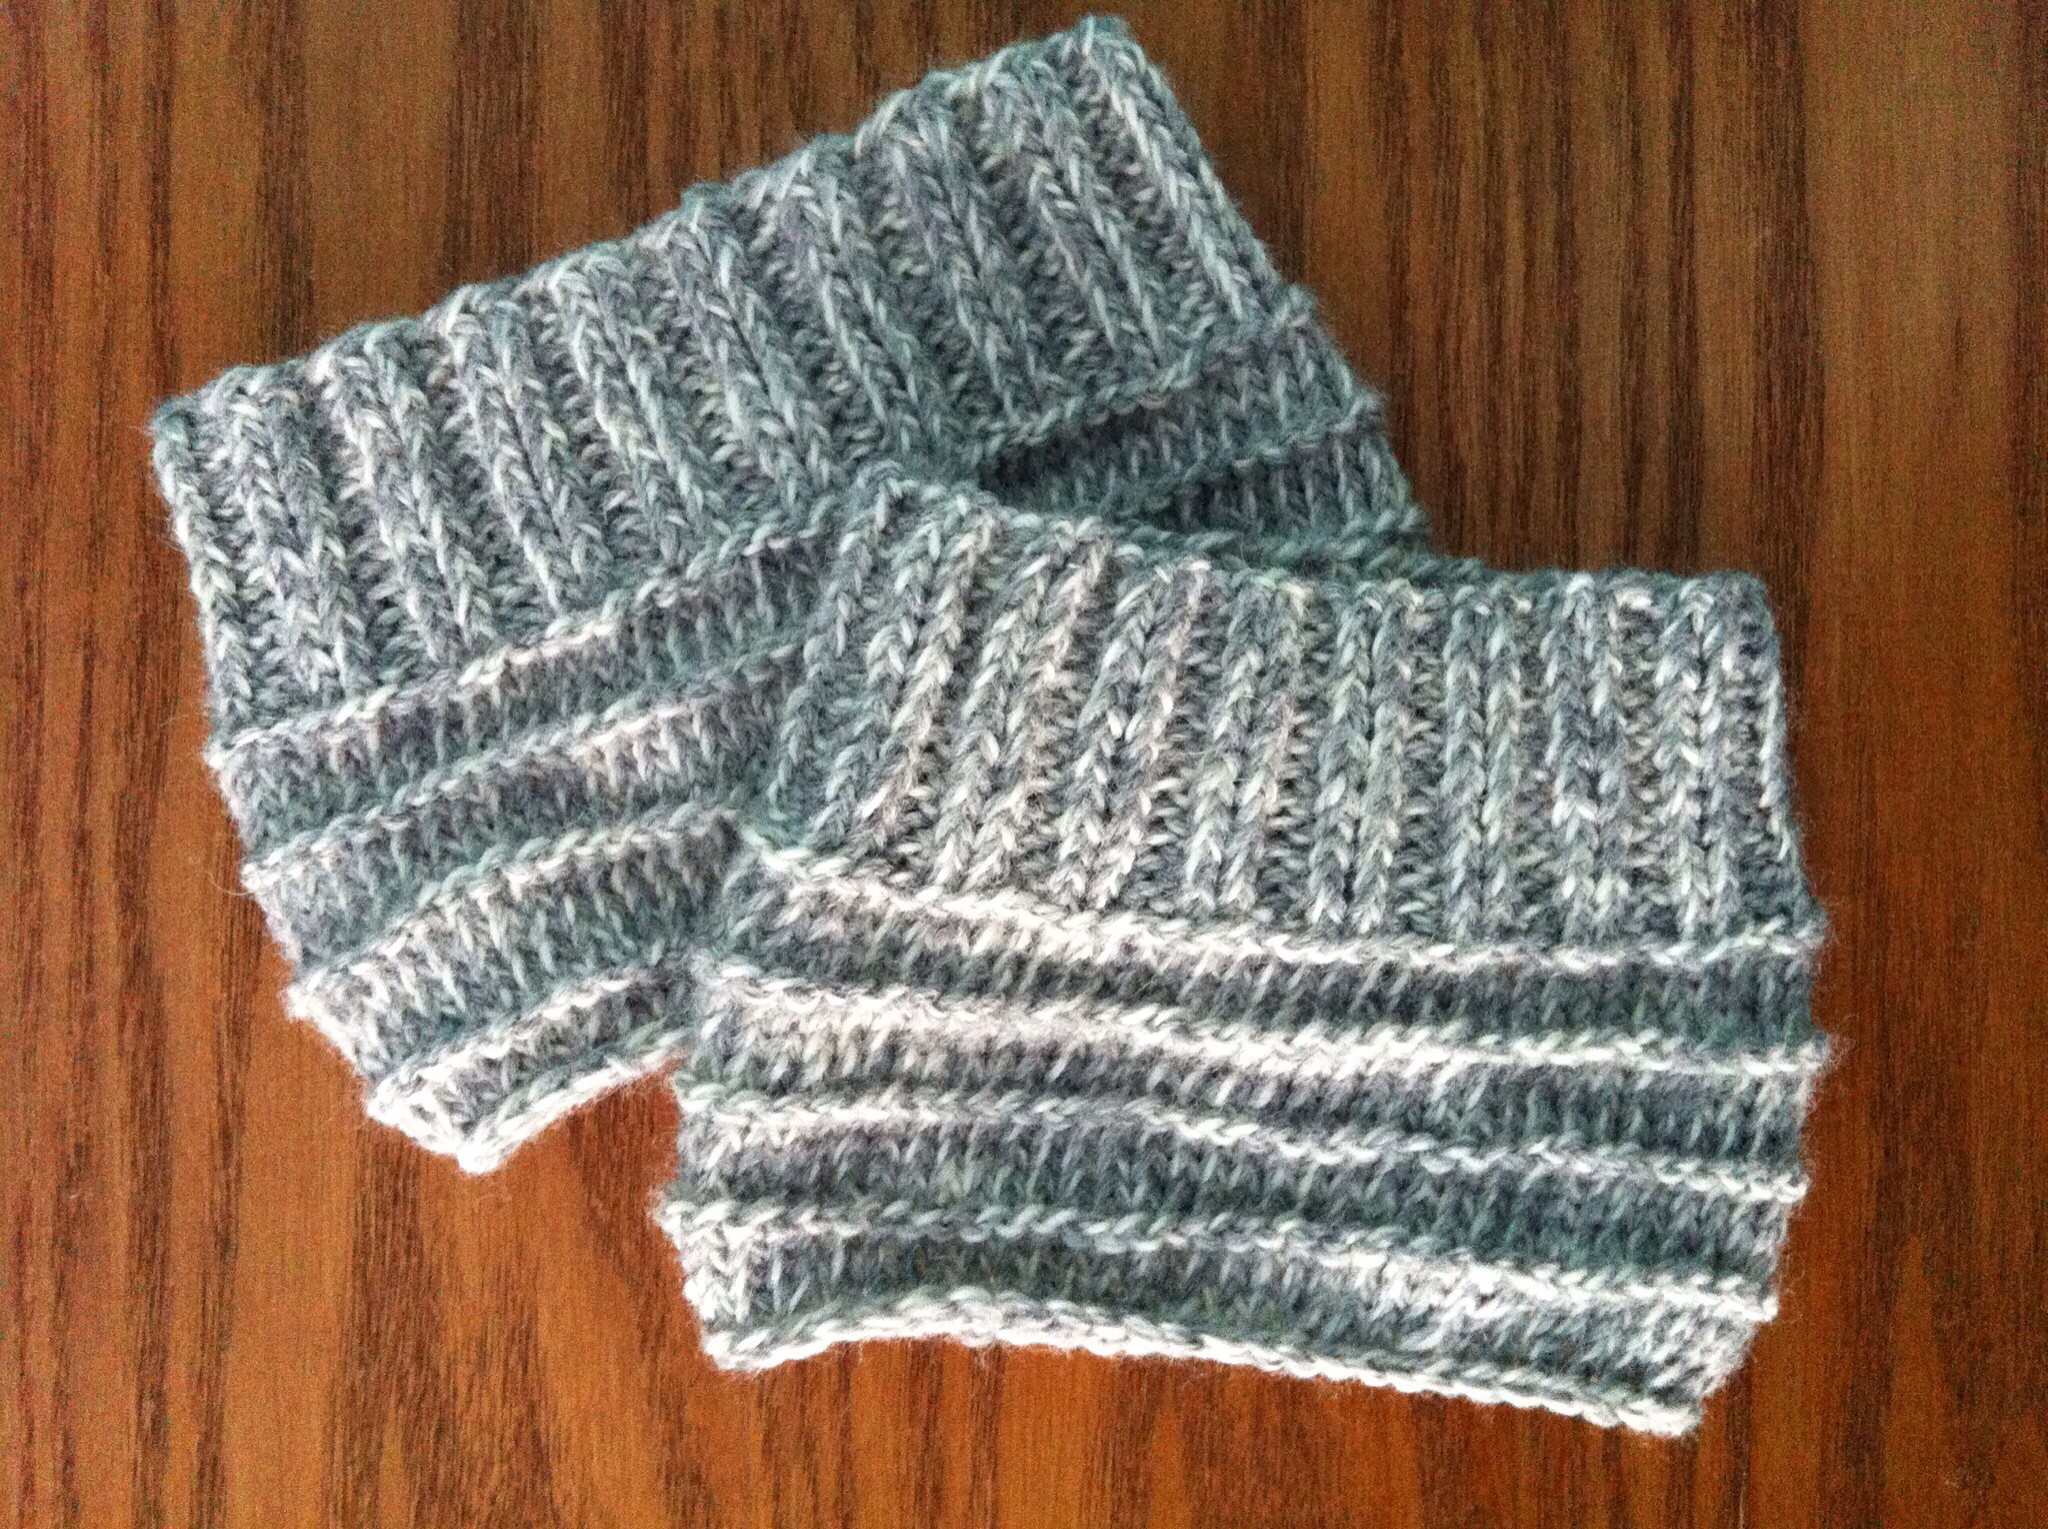 Best Of Penelope Rae Knit Boot Cuffs Free Knitting Pattern Knitted Boot Cuffs Of Awesome Kriskrafter Free Knit Pattern 2 Needle Boot toppers Cuffs Knitted Boot Cuffs